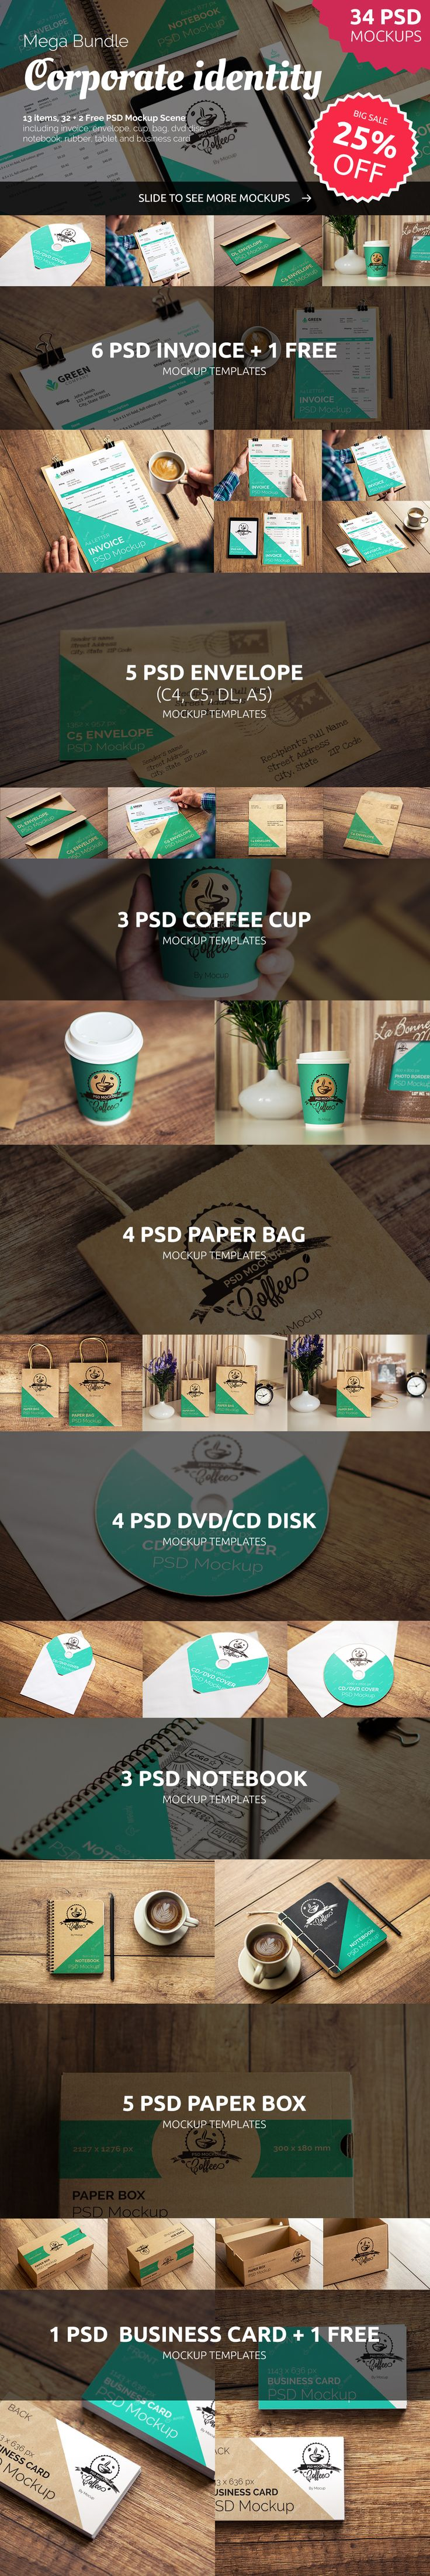 NOW 25% OFF! We are happy to introduce to you this huge set of 34 PSD of corporate indentity mockups perfect for making brandings and logo previews in a realistic and inspiring way. We did our best to compile varied branding stuff such are business card, invoice, envelope, disk, note, rubber, letter, Ipad Air 2 and more… Not only able to present your projects, but ready to become a part of your next creative work! All made with cup of coffee and love.